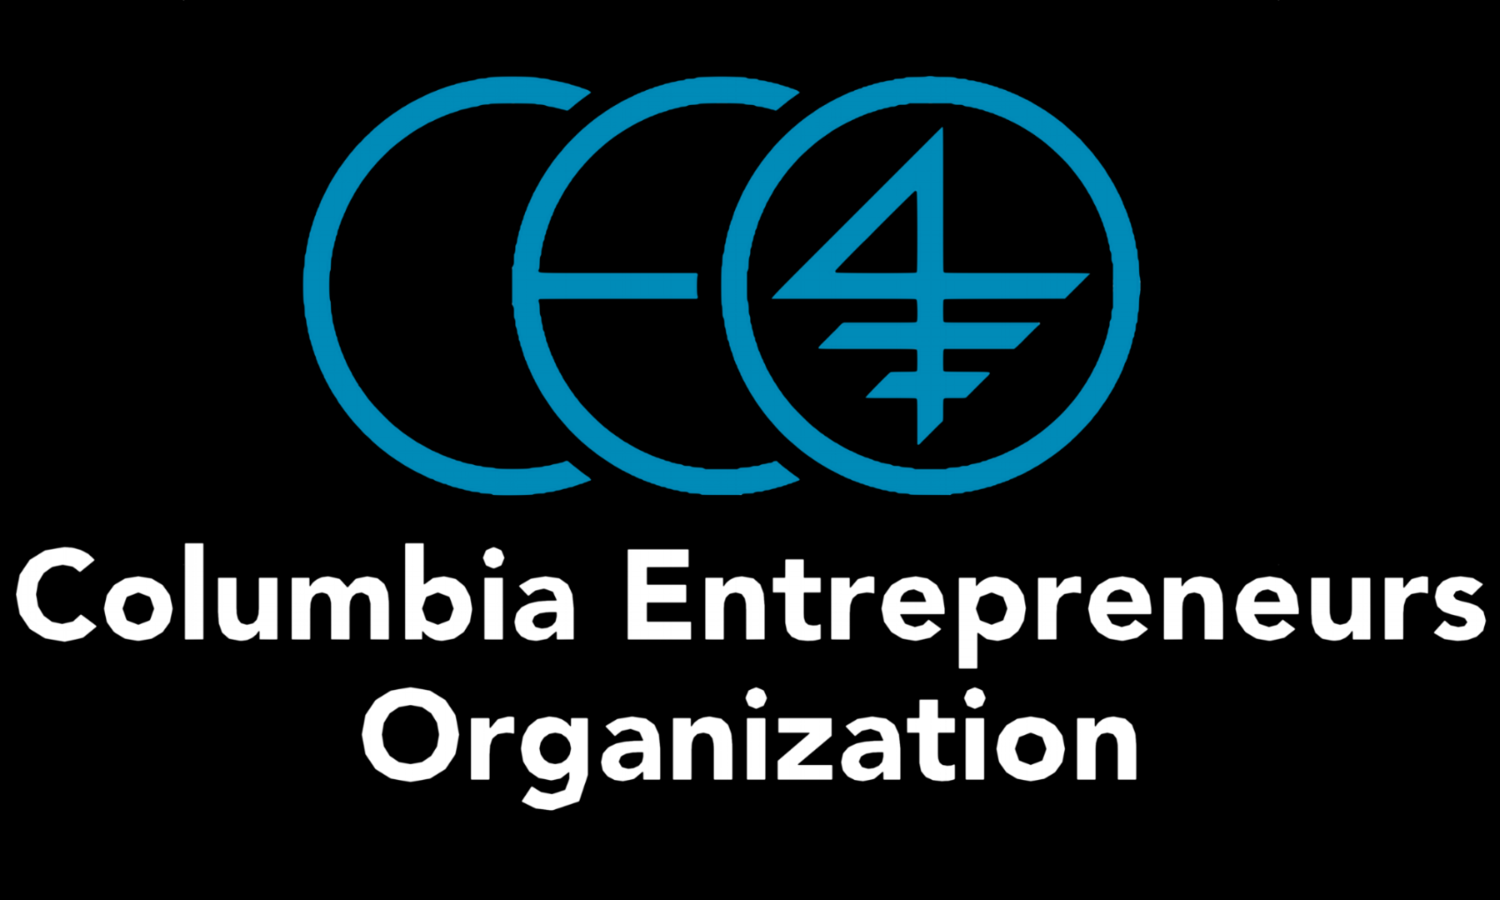 Columbia Entrepreneurs Organization